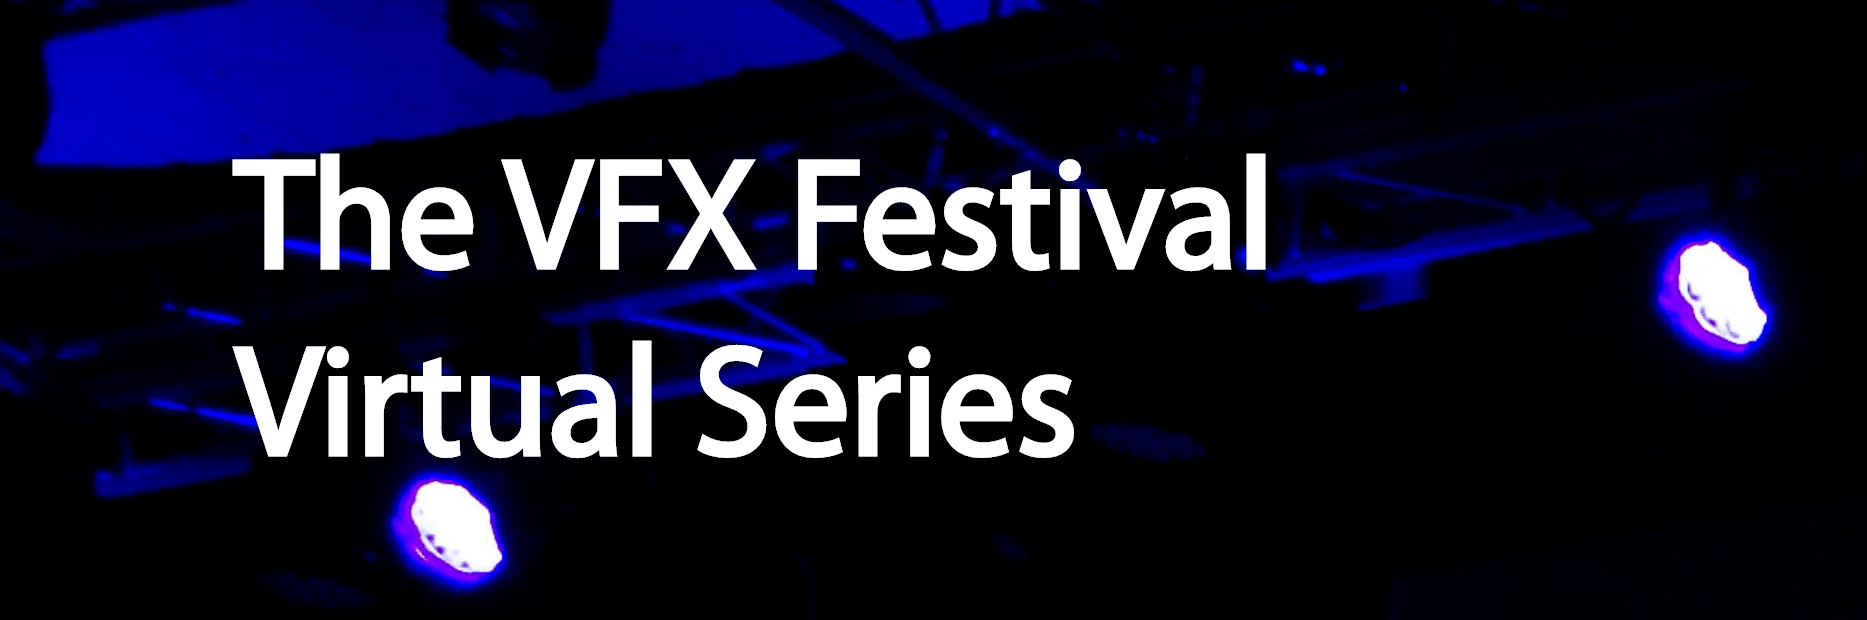 vfx festival virtual series